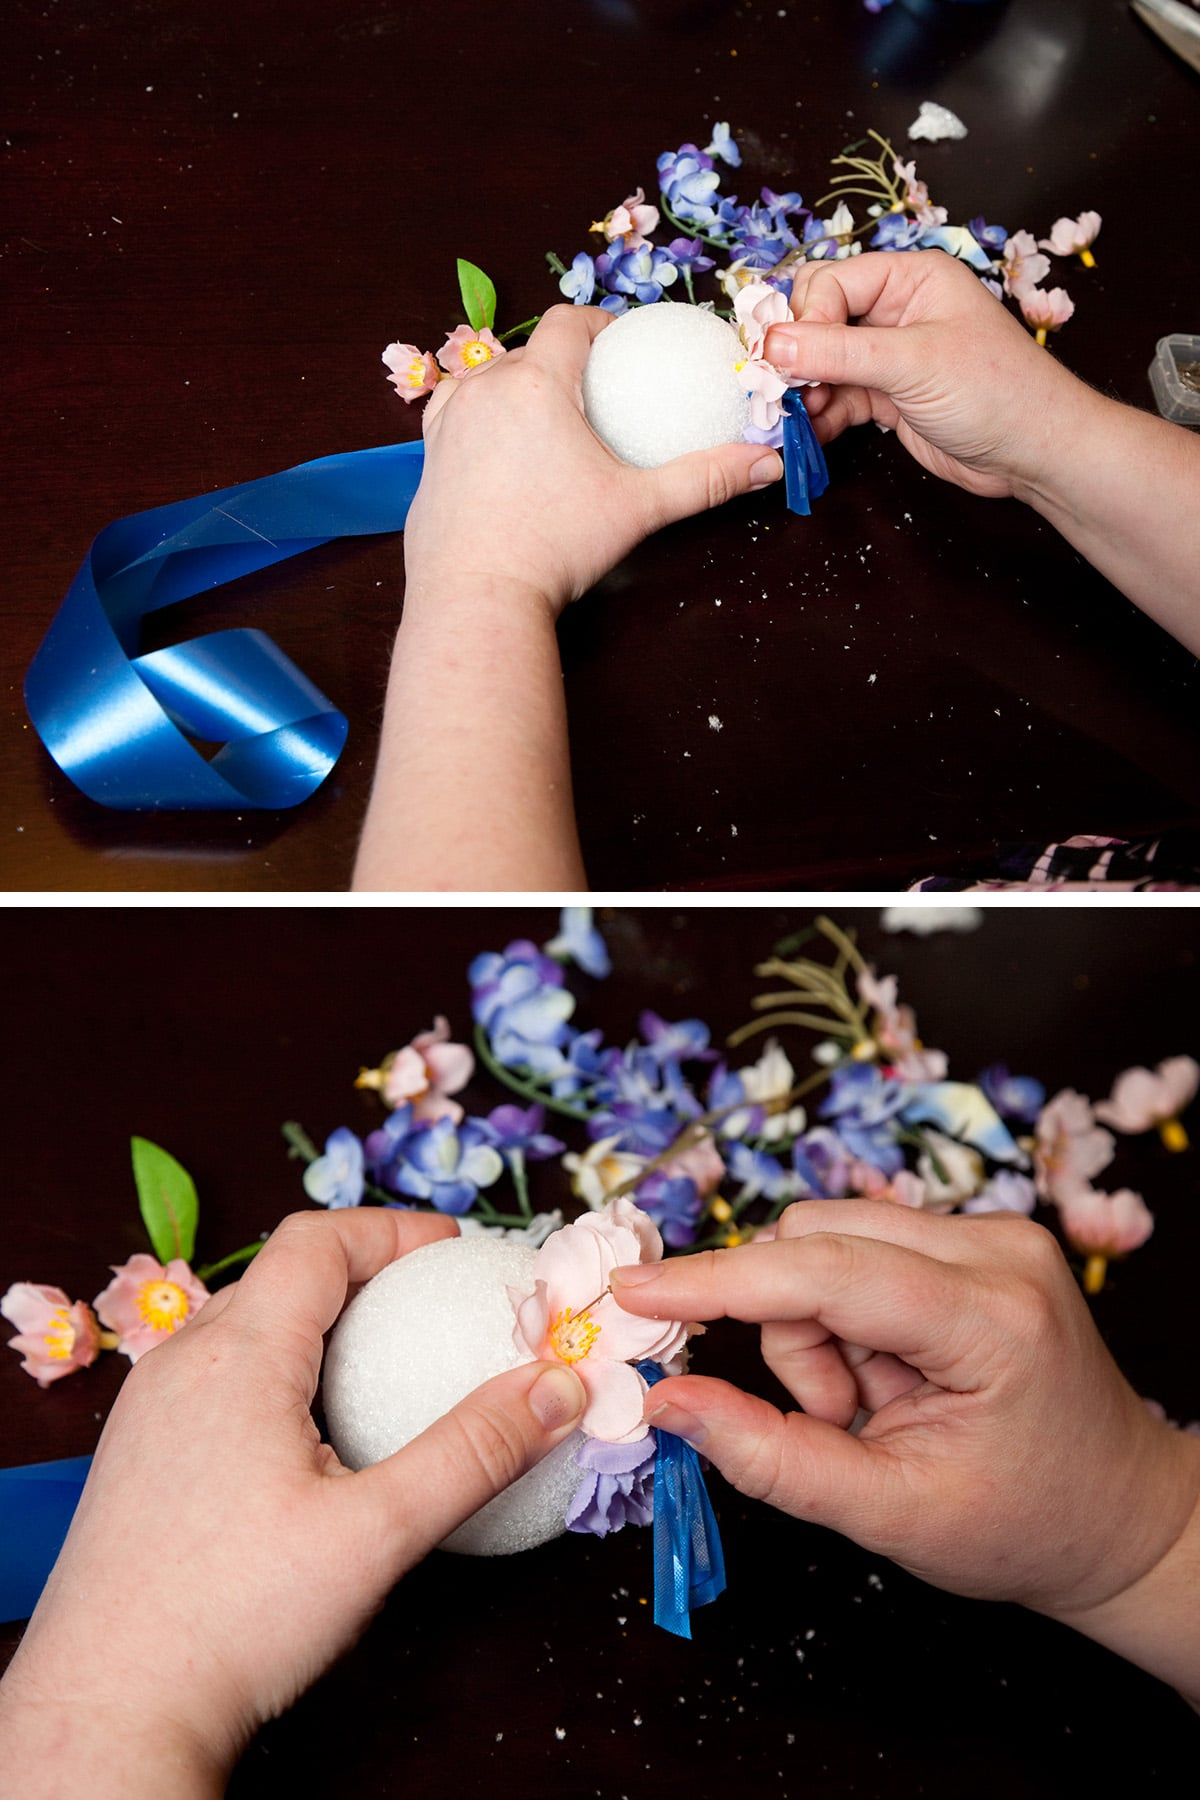 Flowers are being pinned into the styrofoam ball.